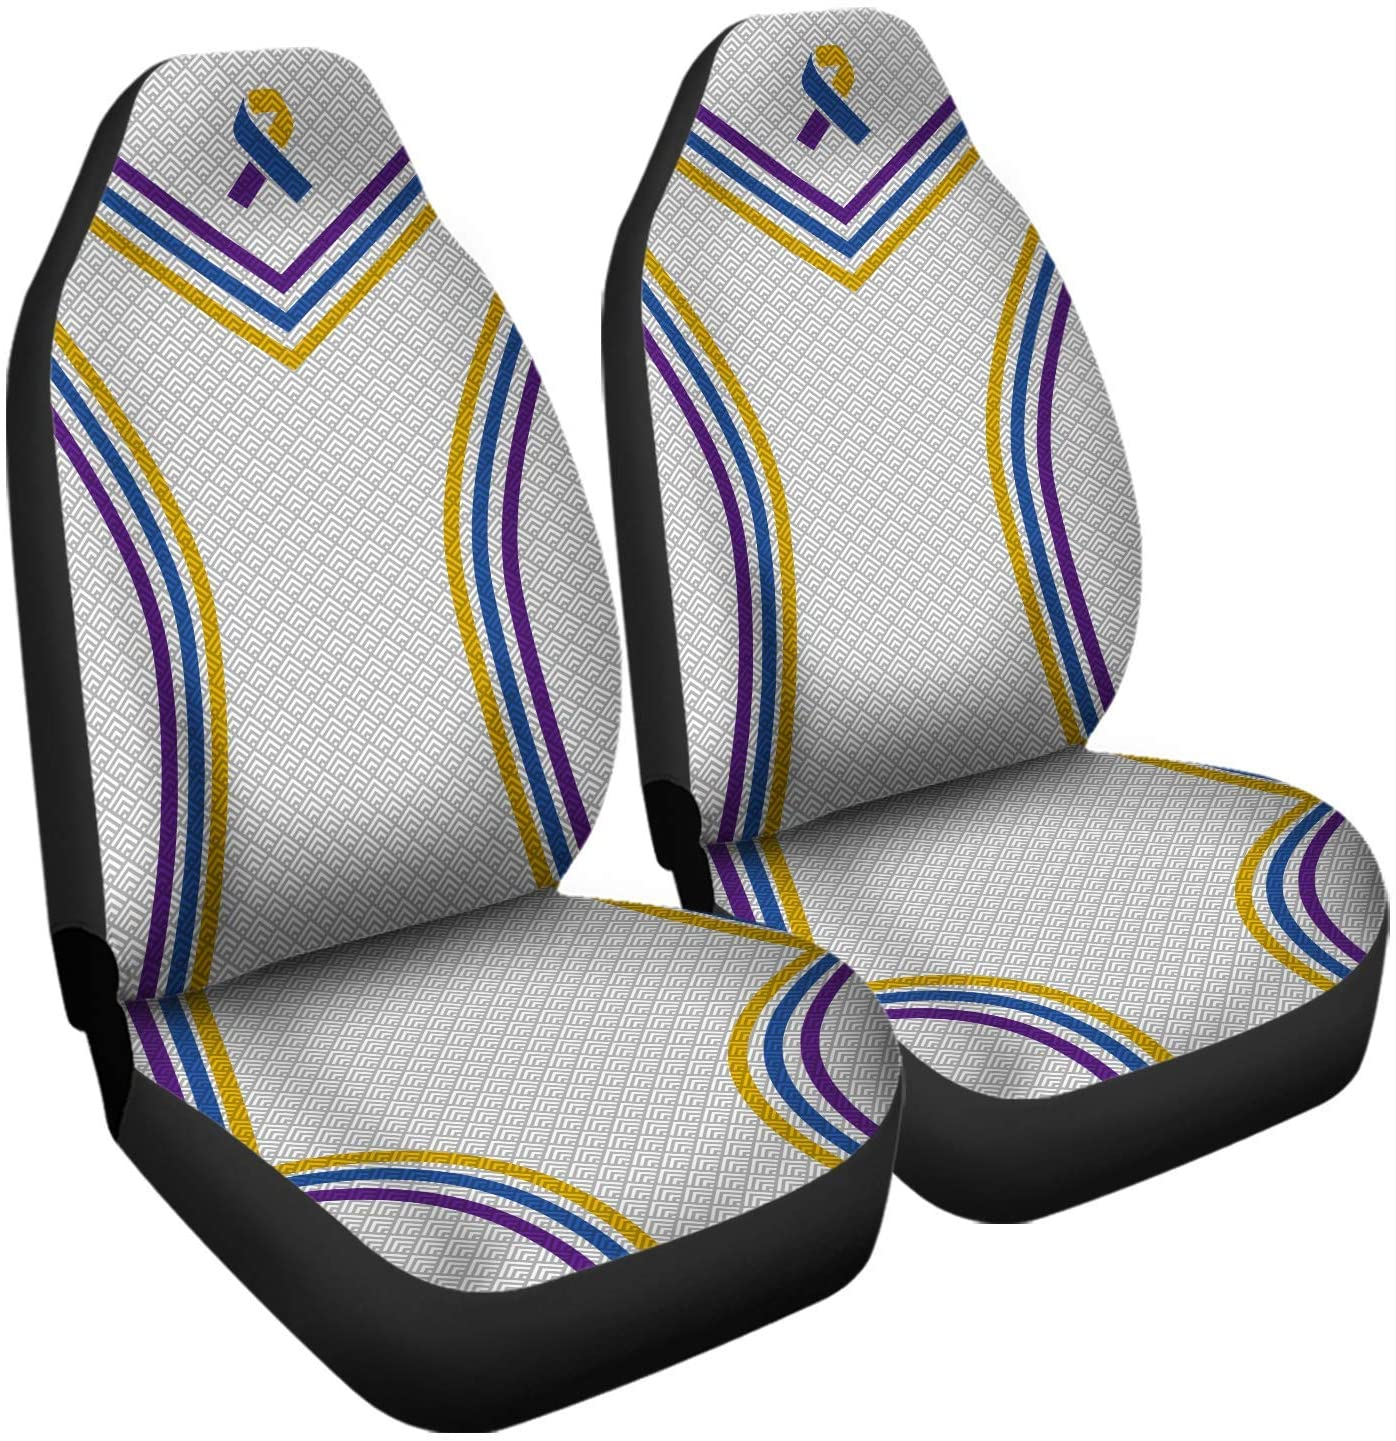 Bladder Cancer Awareness Car Seat Cover 2 Piece Front Universal Fit